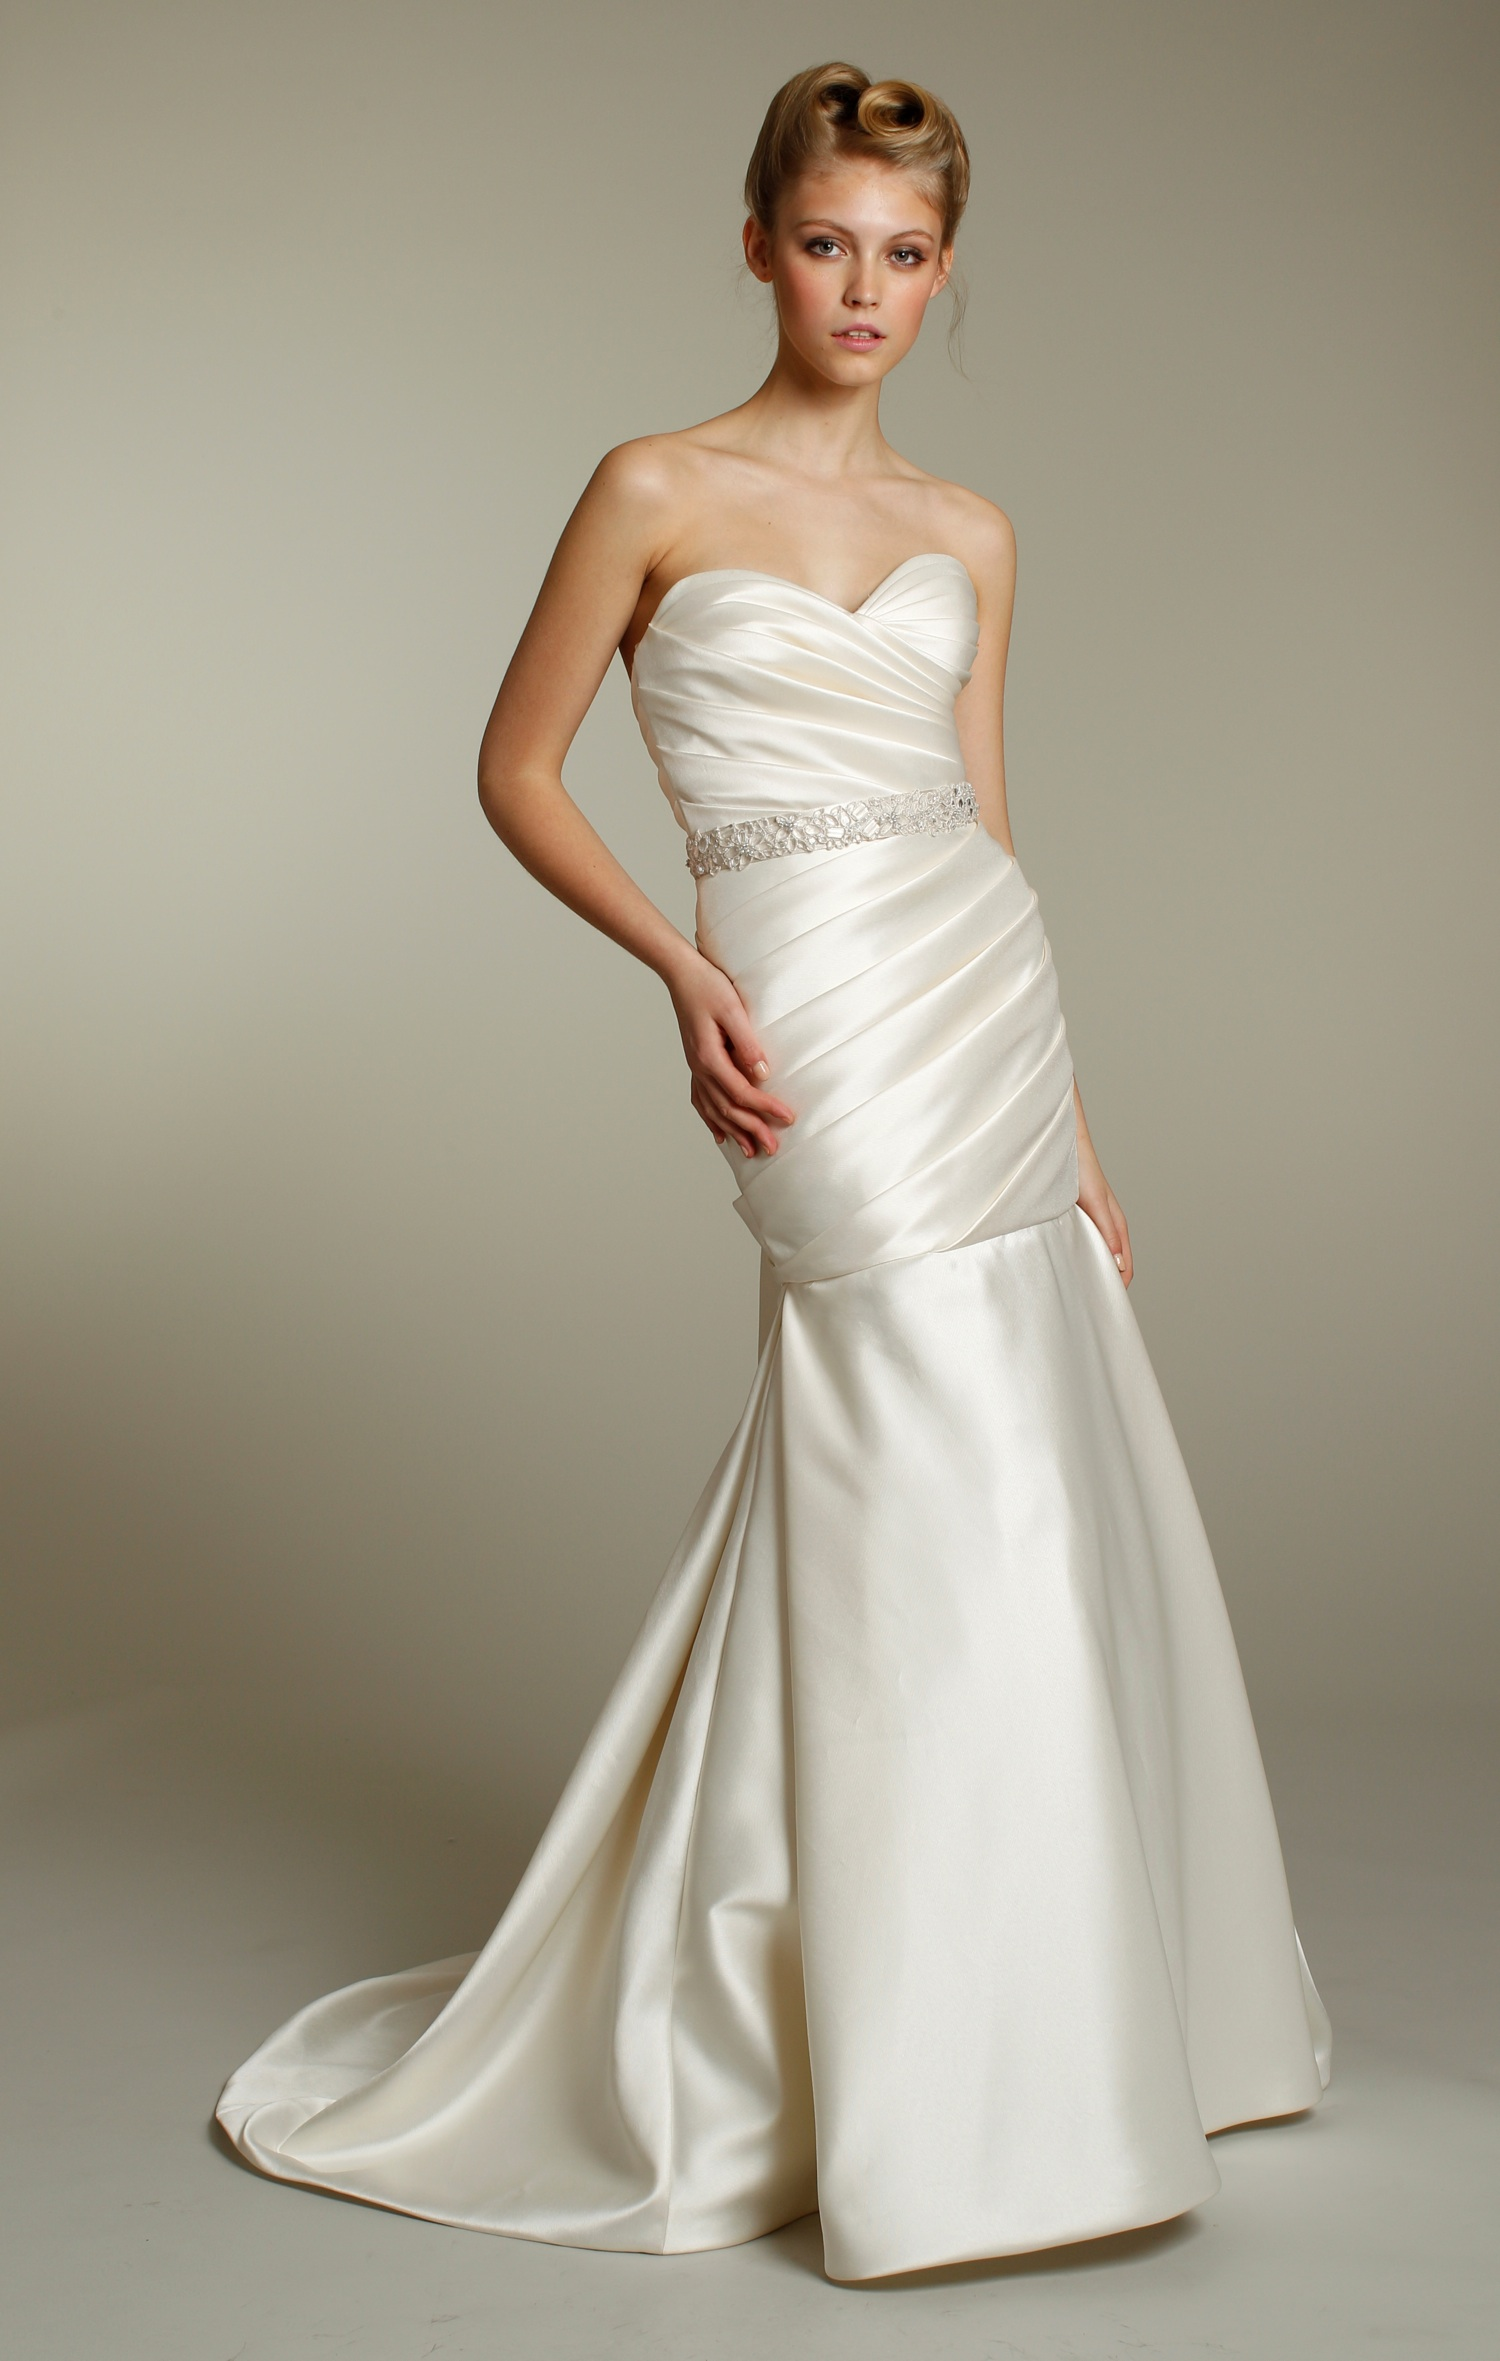 Luxe Ivory Sweetheart Neckline Drop Waist Mermaid Wedding Dress With Beaded B